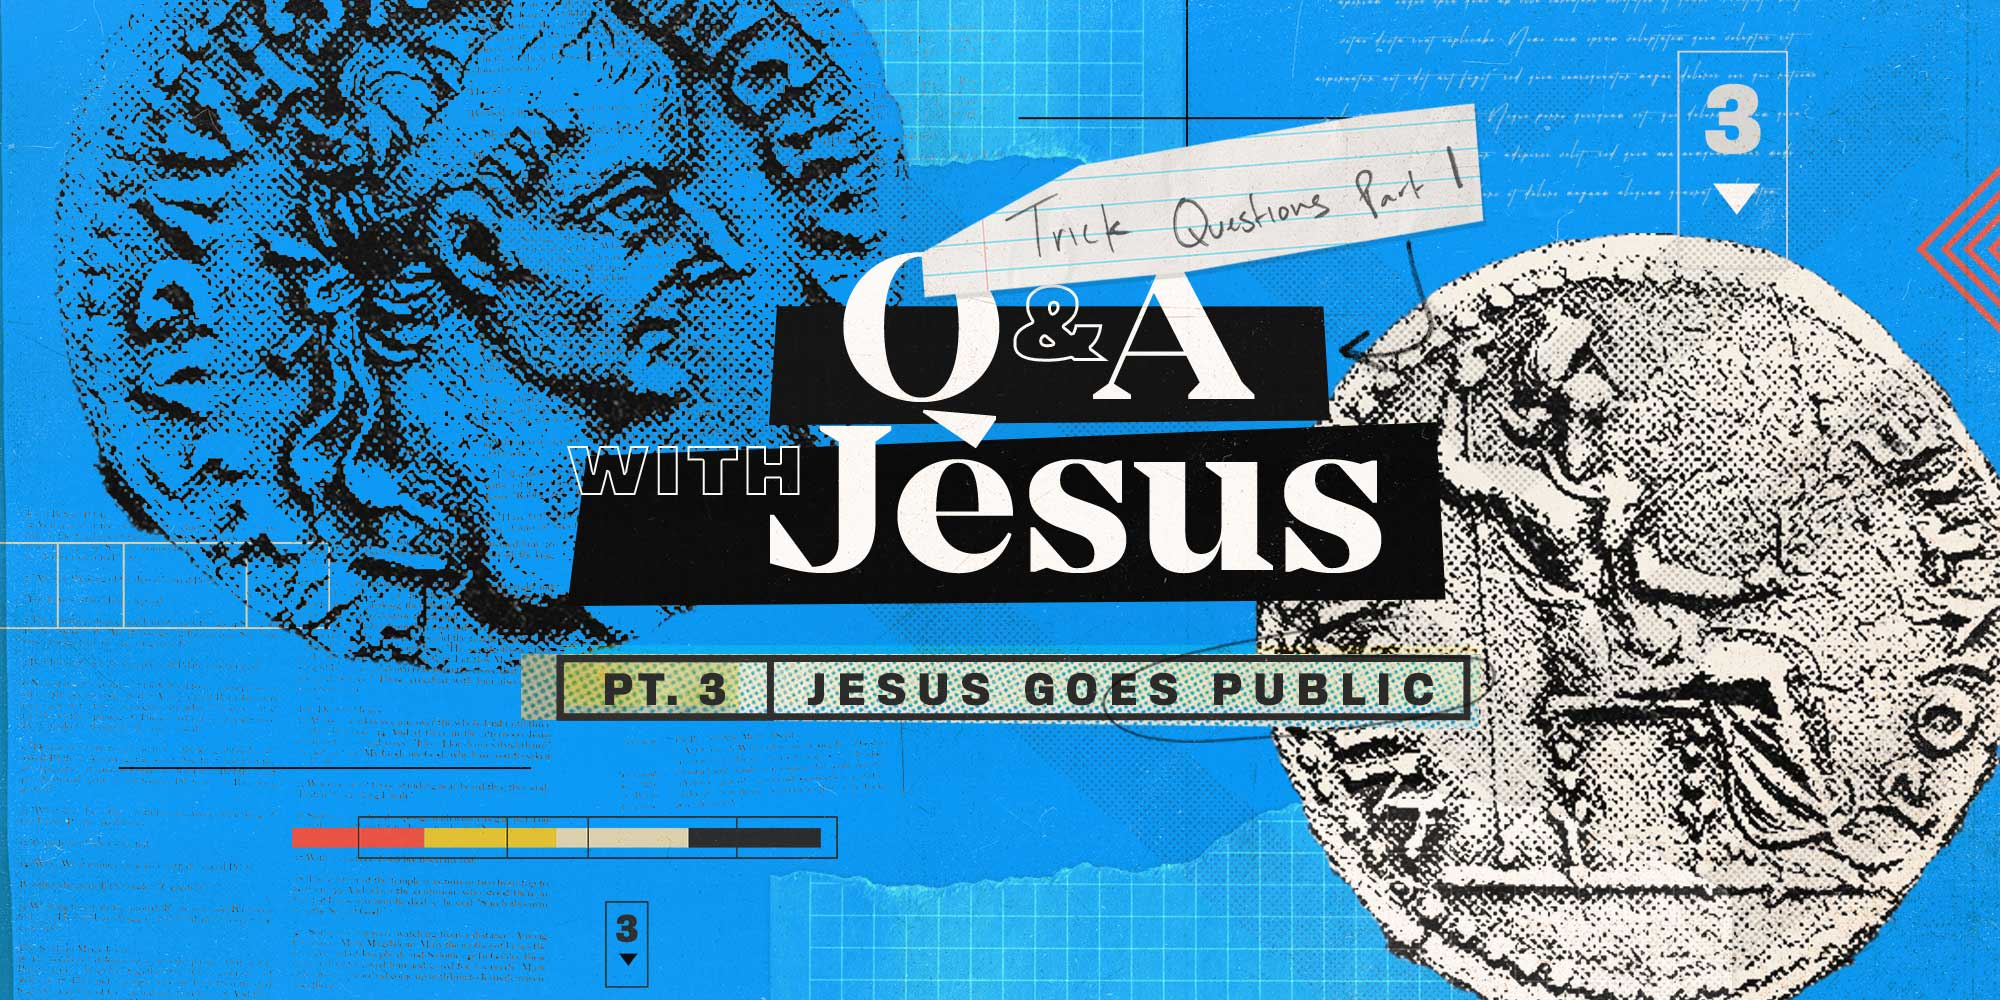 Mark-Week-21---Q&A-With-Jesus Image